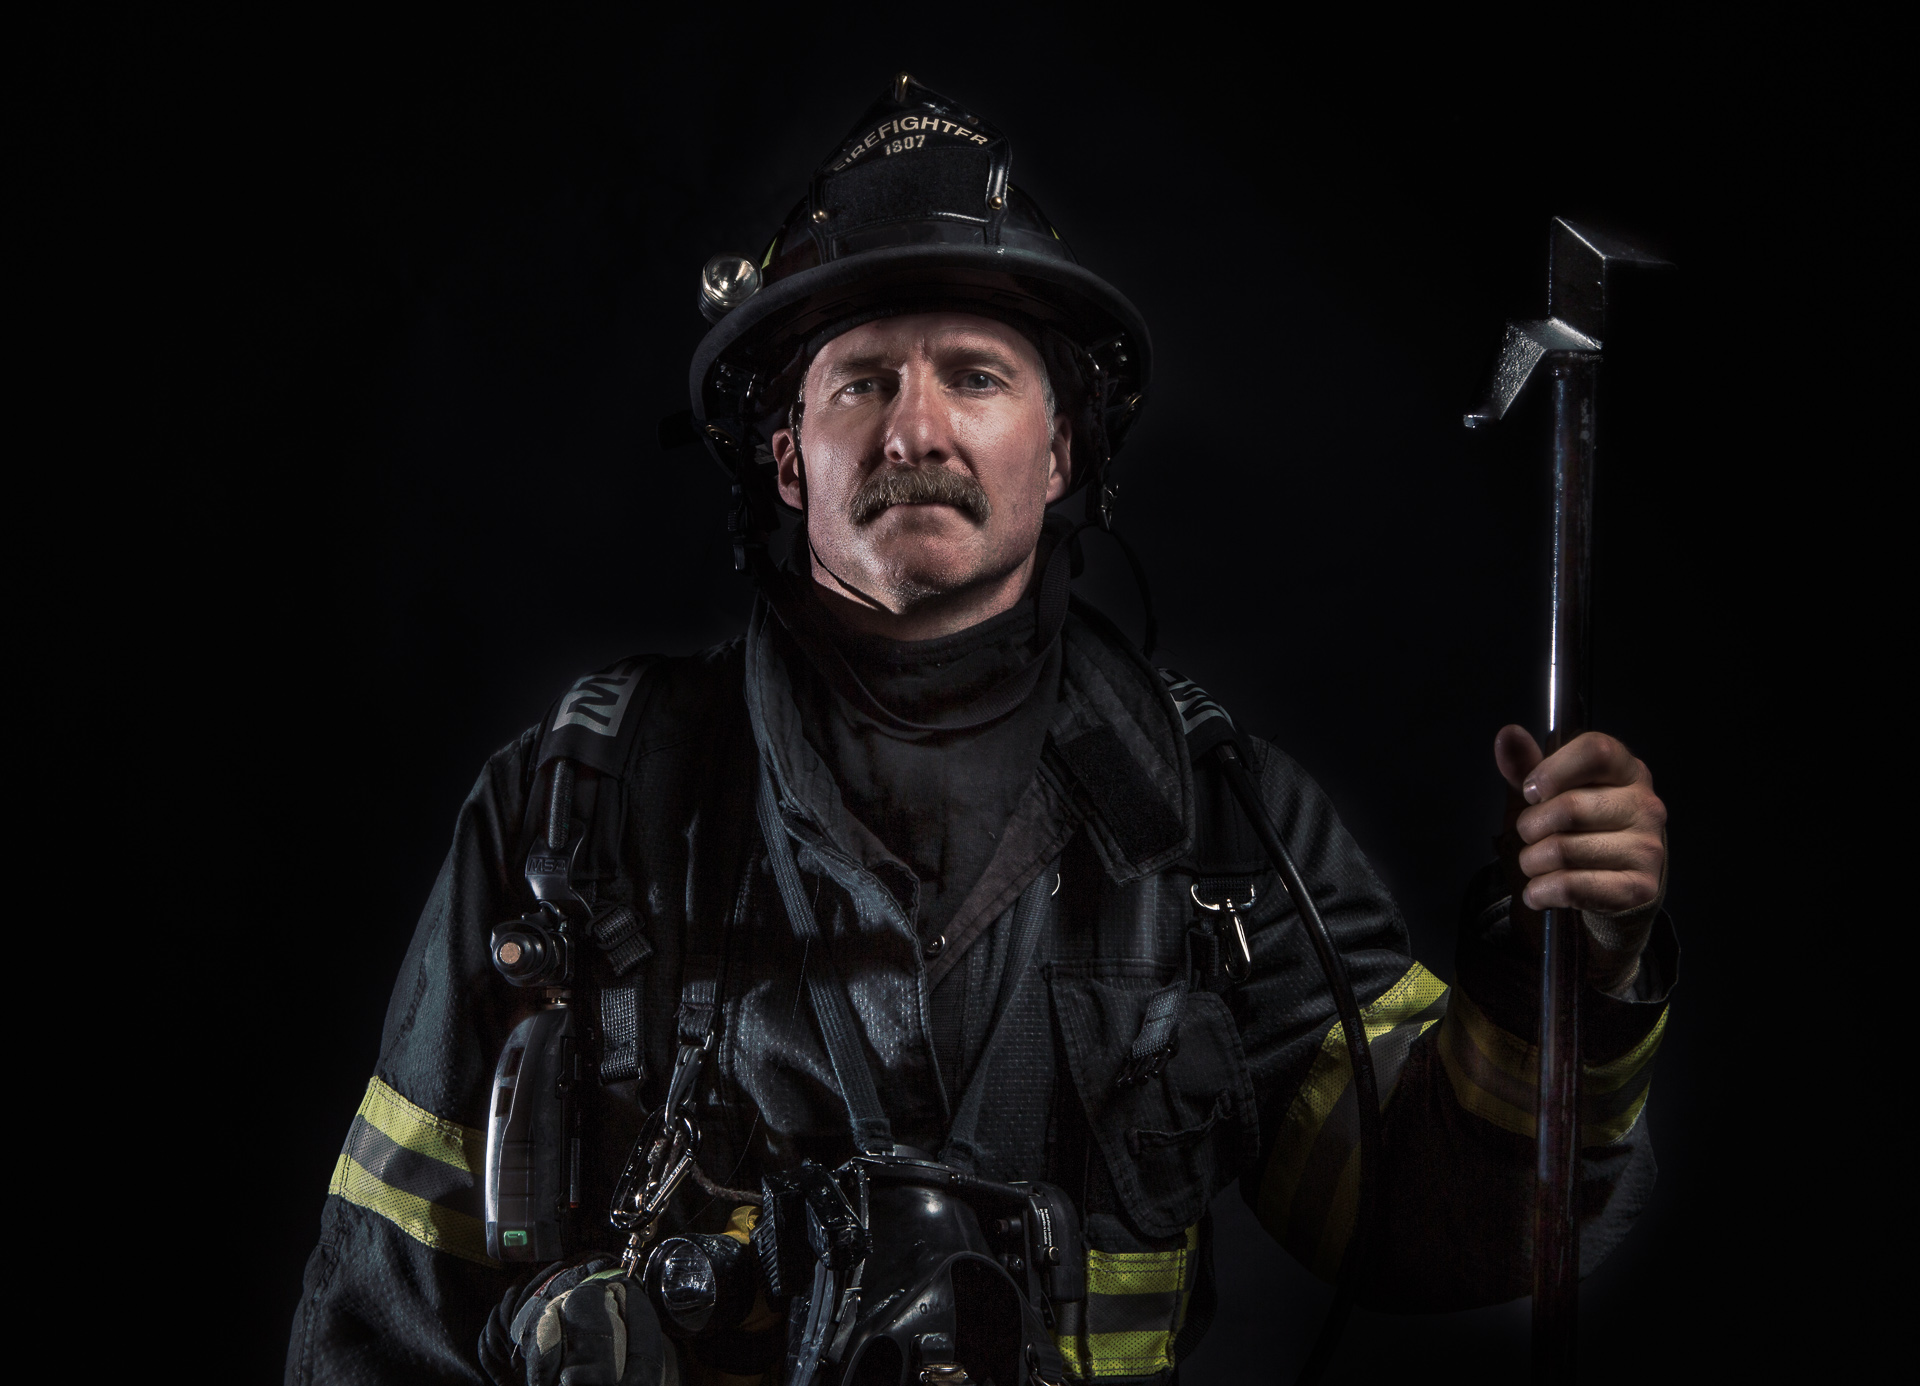 American Heroes/ Fire Fighters/Industry/Portraits